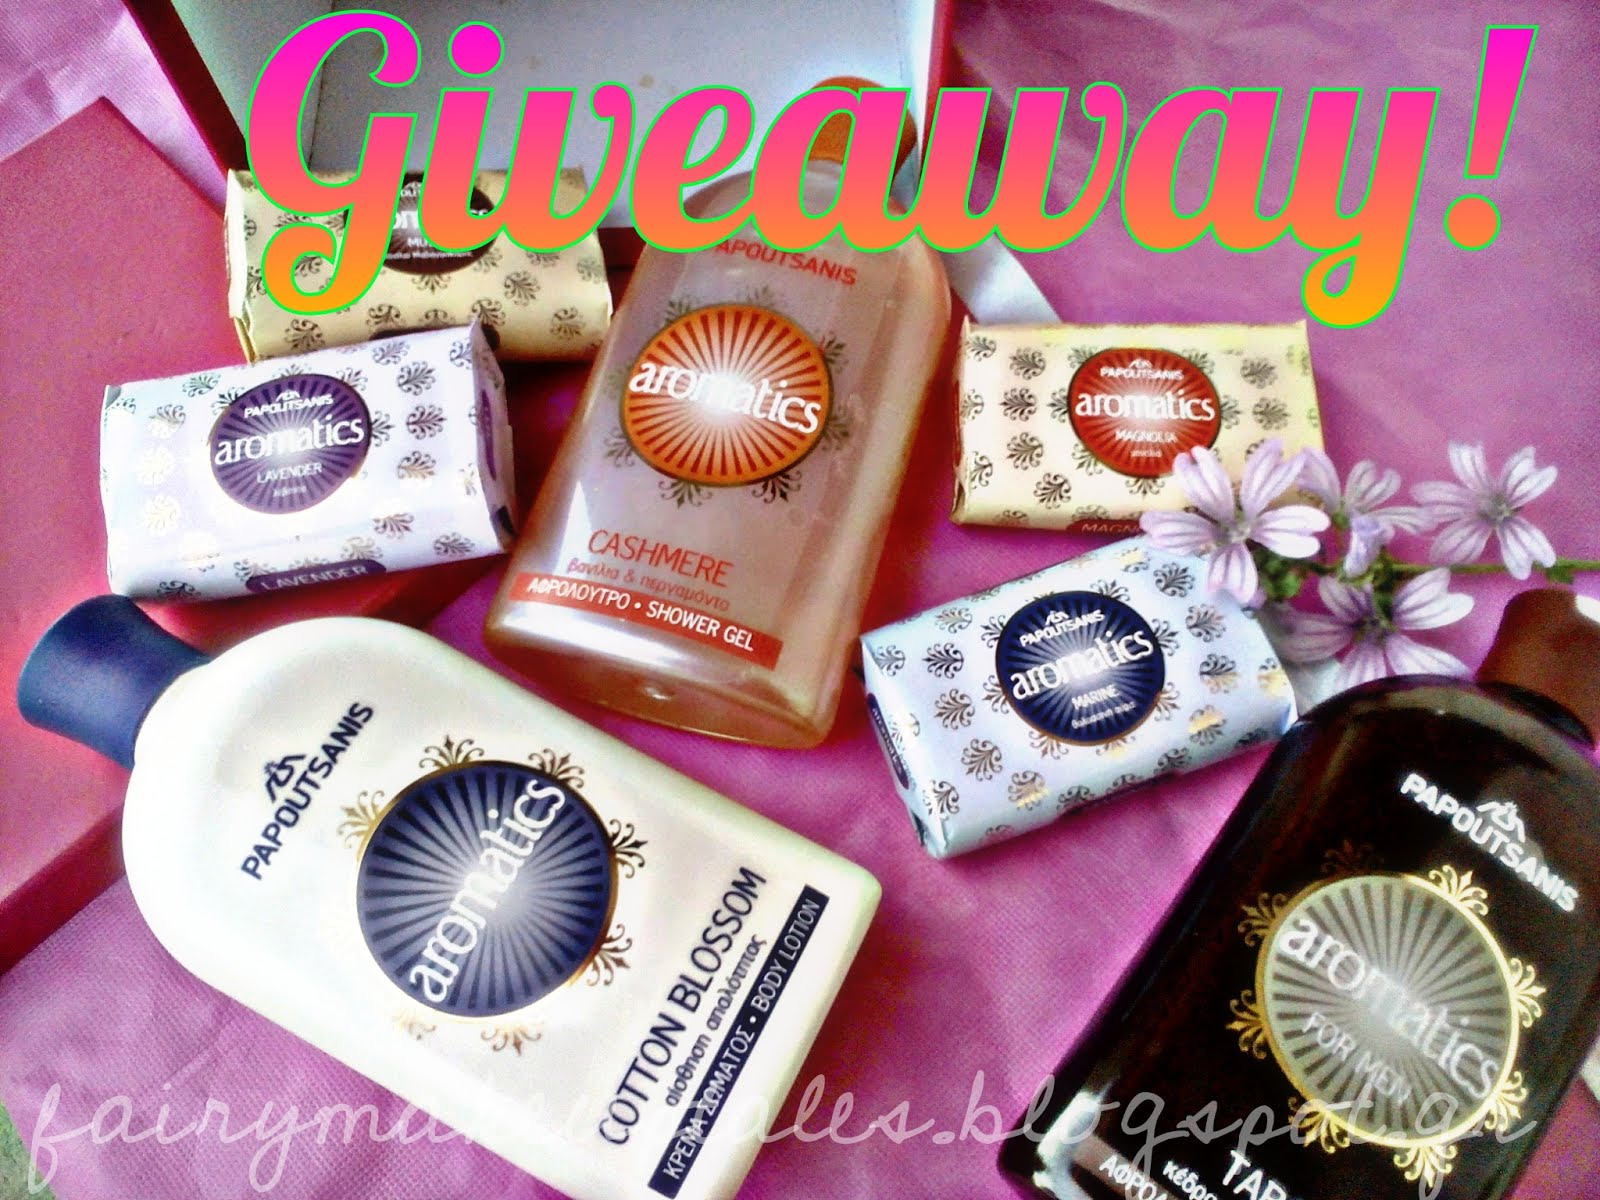 Win a box full of Aromatics by Papoutsanis bath products!